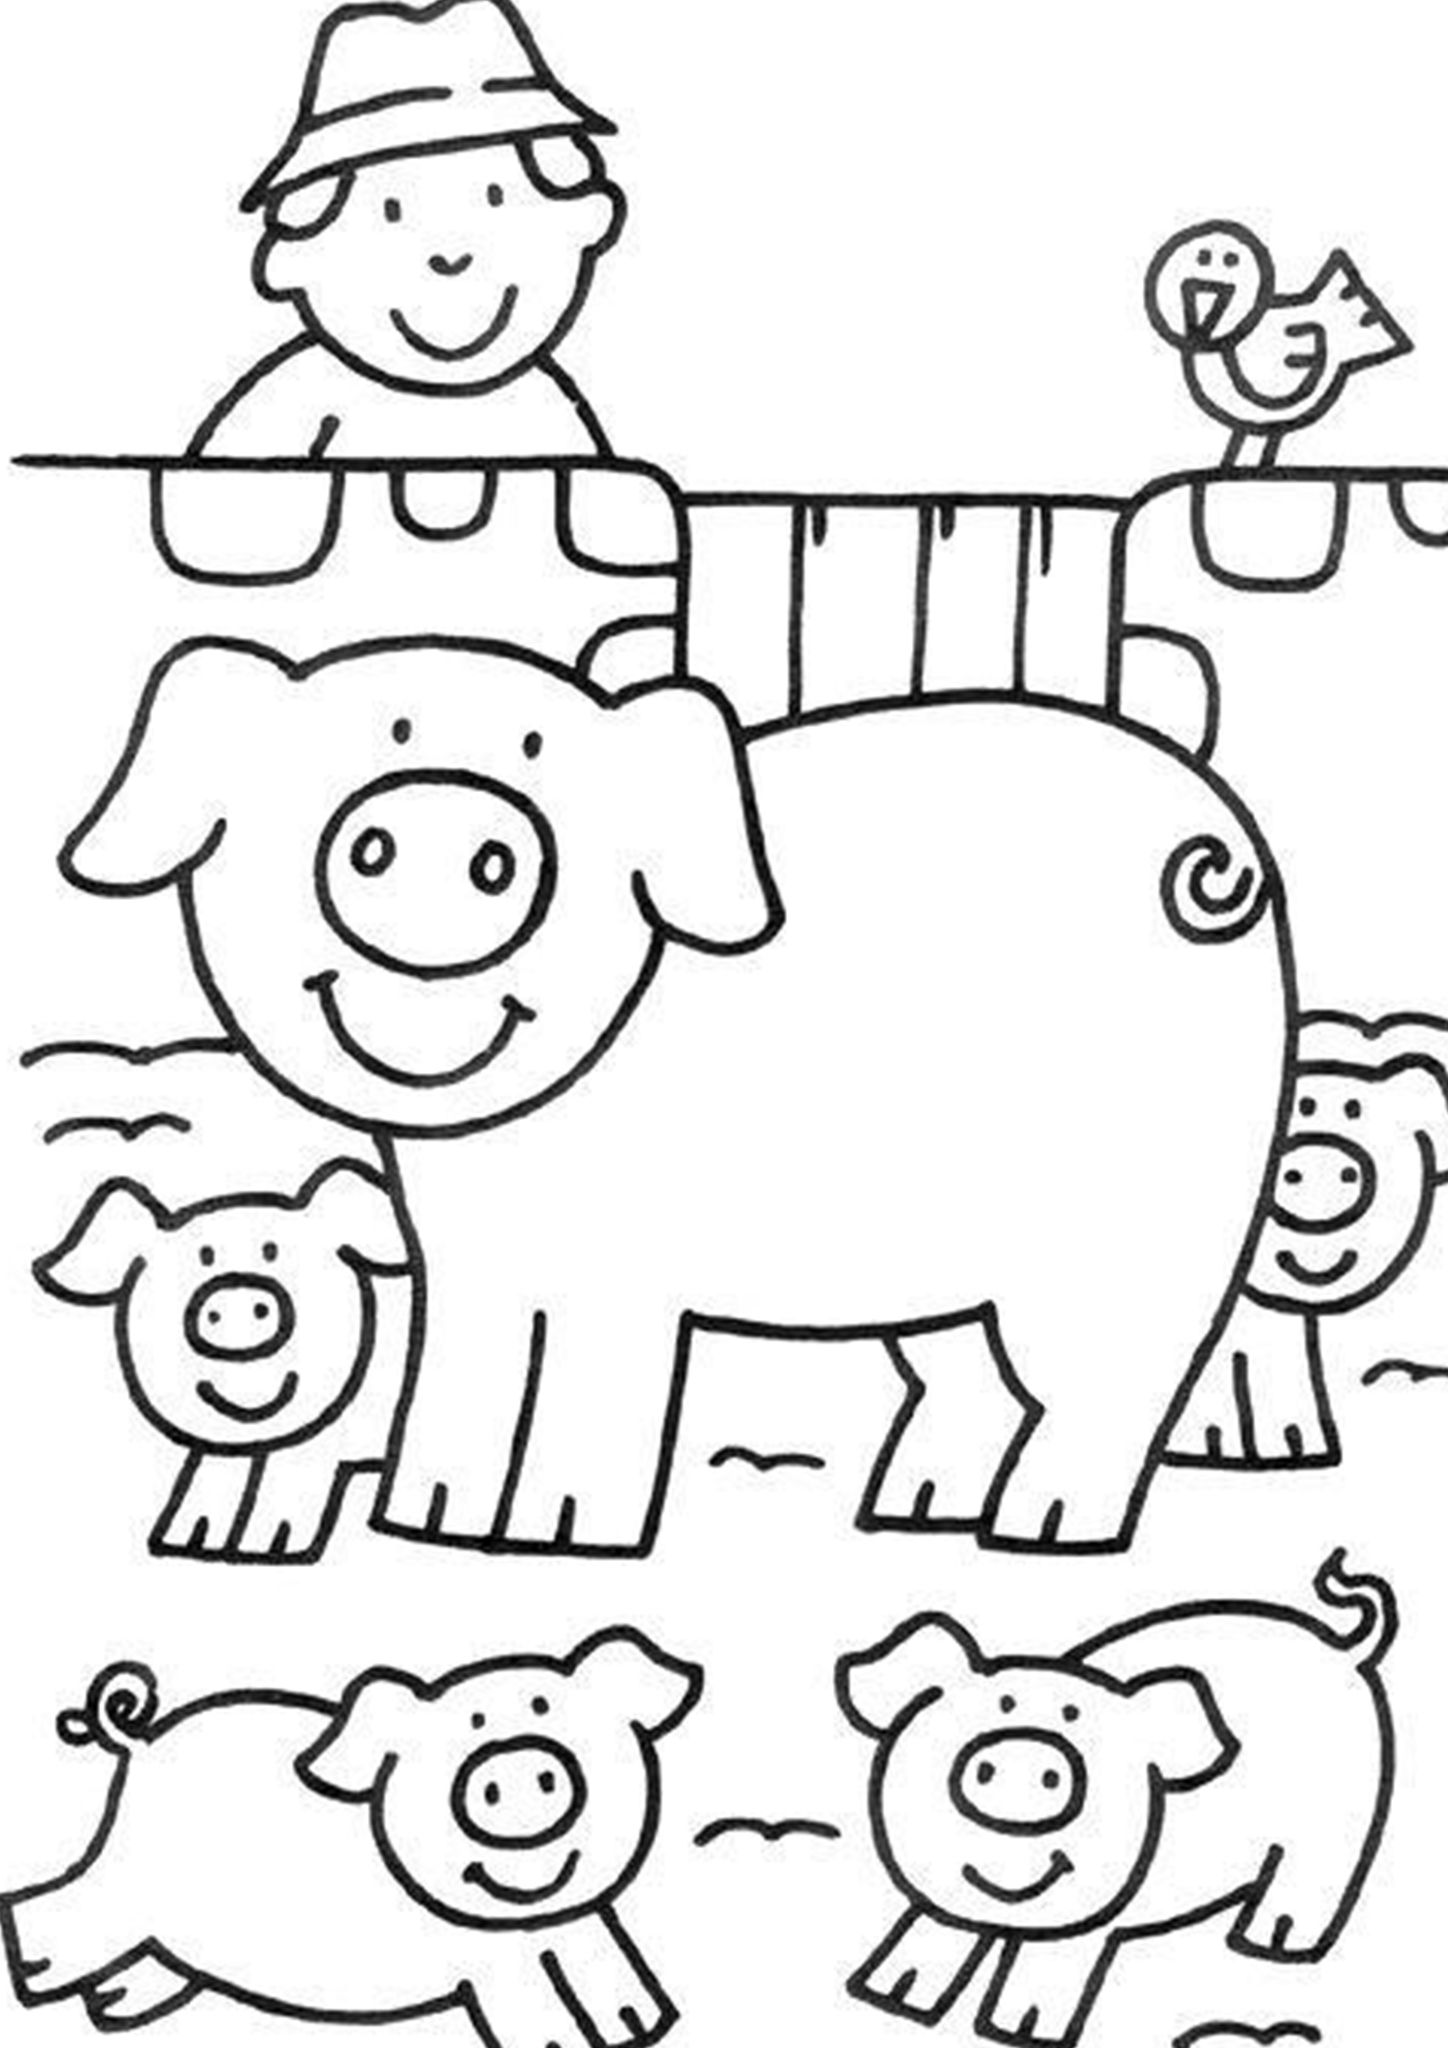 Safari Coloring Page Preschool Submited Images Pic 2 Fly Zoo Animal Coloring Pages Zoo Coloring Pages Animal Coloring Pages